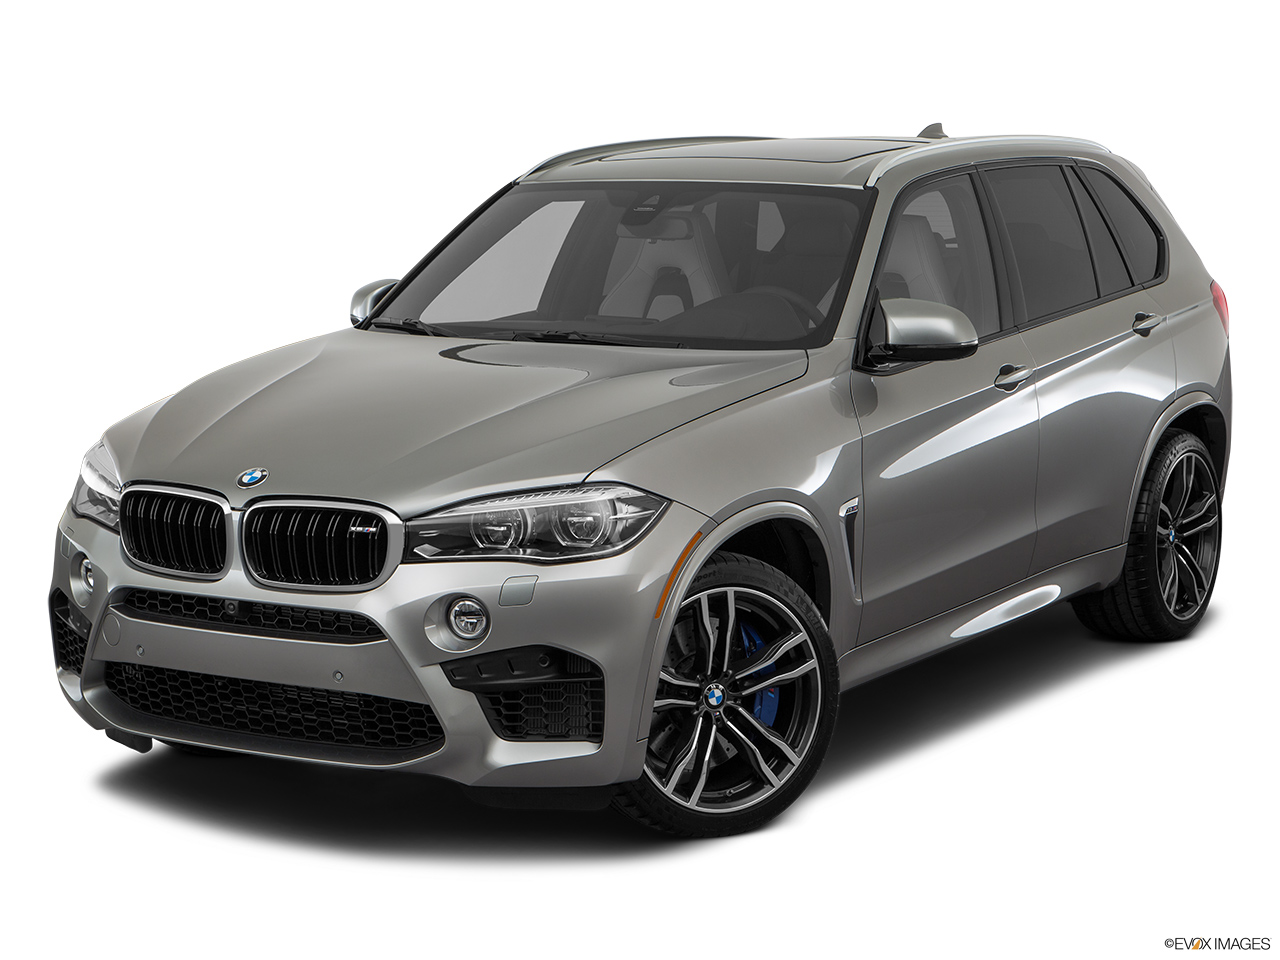 2017 bmw x5 m prices in uae gulf specs reviews for dubai abu dhabi and sharjah yallamotor. Black Bedroom Furniture Sets. Home Design Ideas